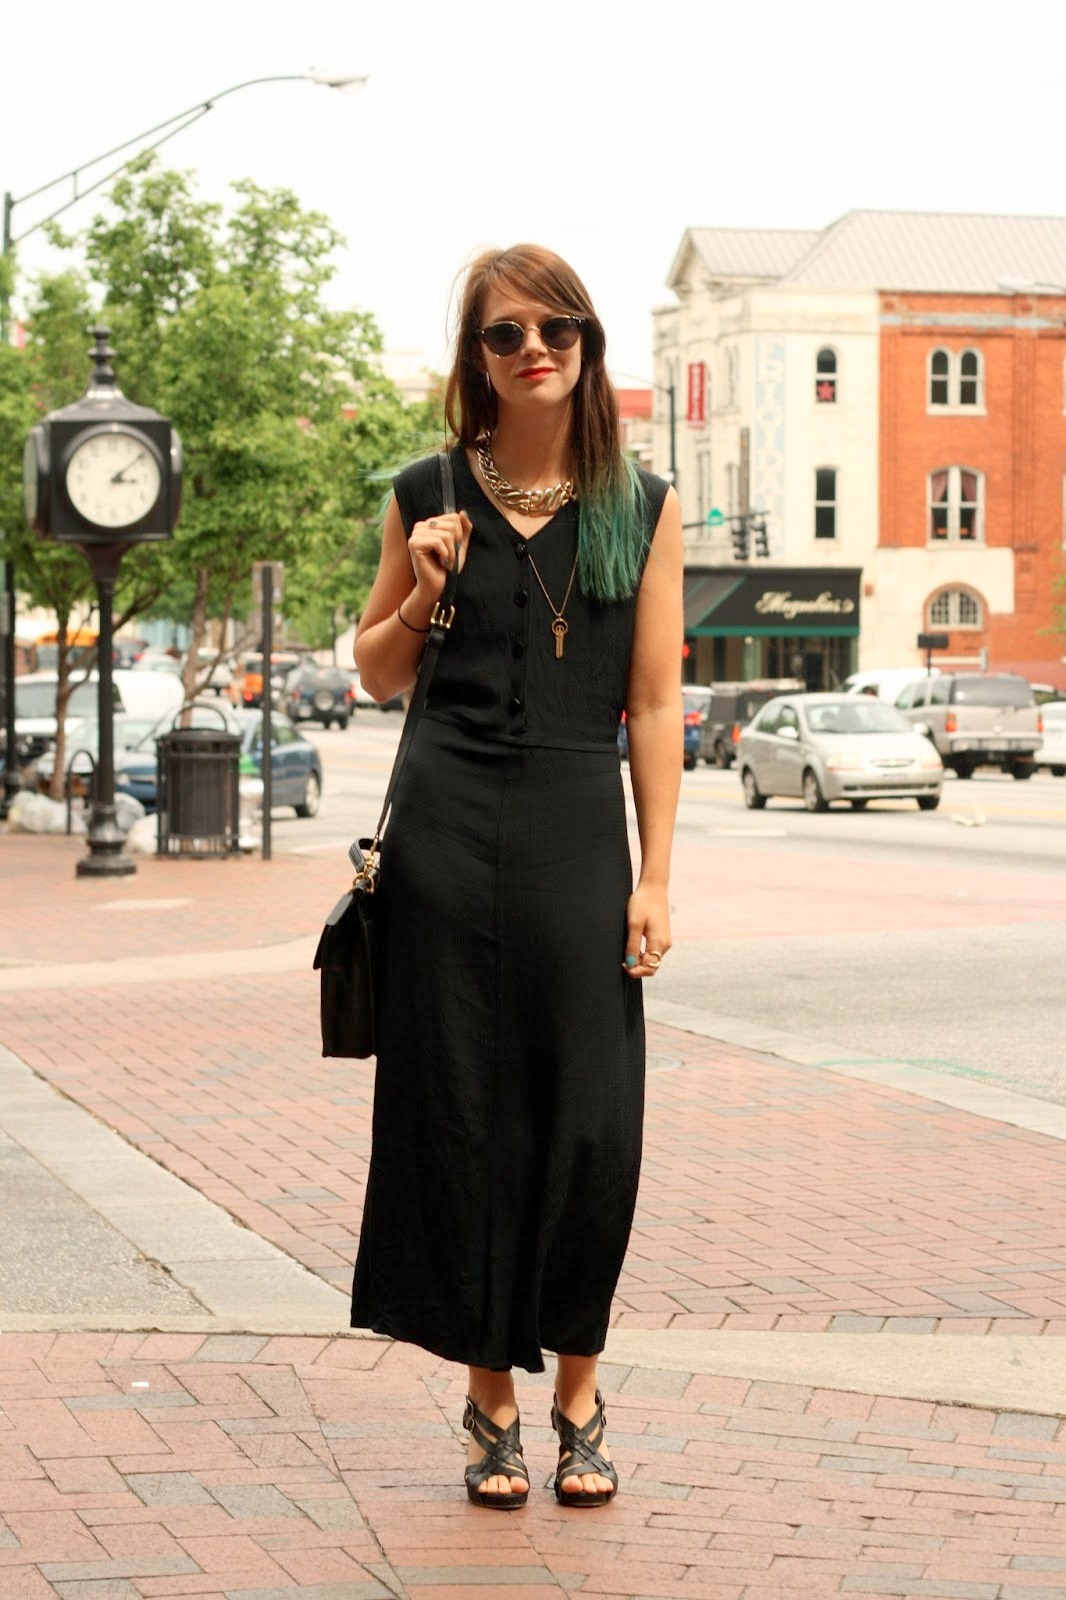 University of Georgia in Athens, GA student wears a long sleeveless black summer dress with leather heel sandals. Keychain necklace